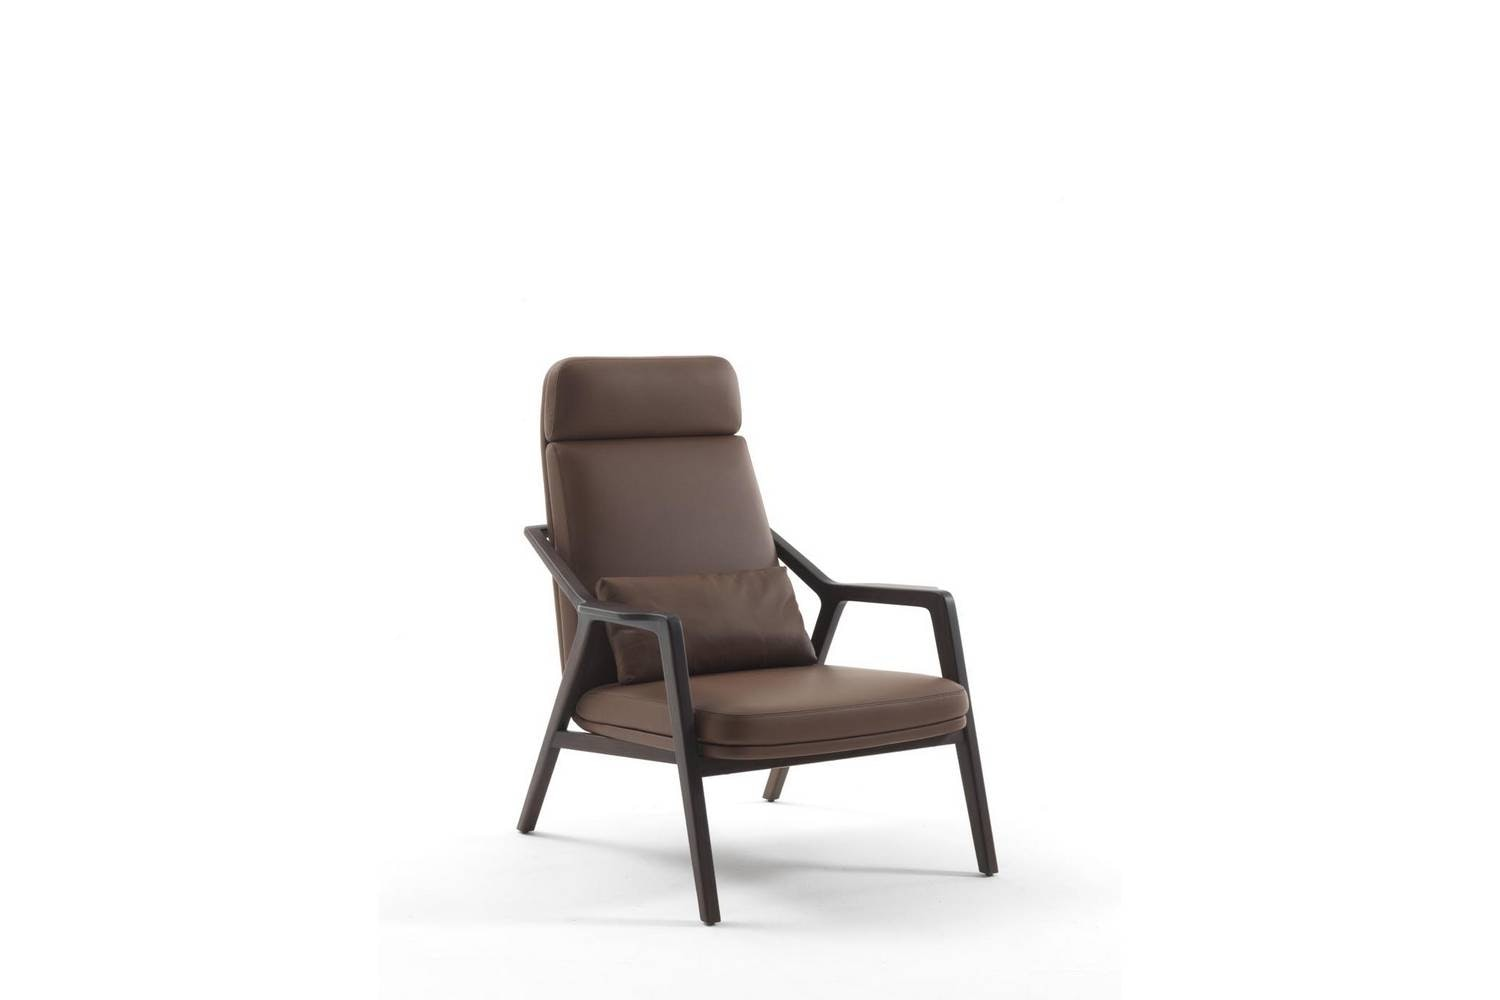 Loretta Armchair by Emmanuel Gallina for Porada